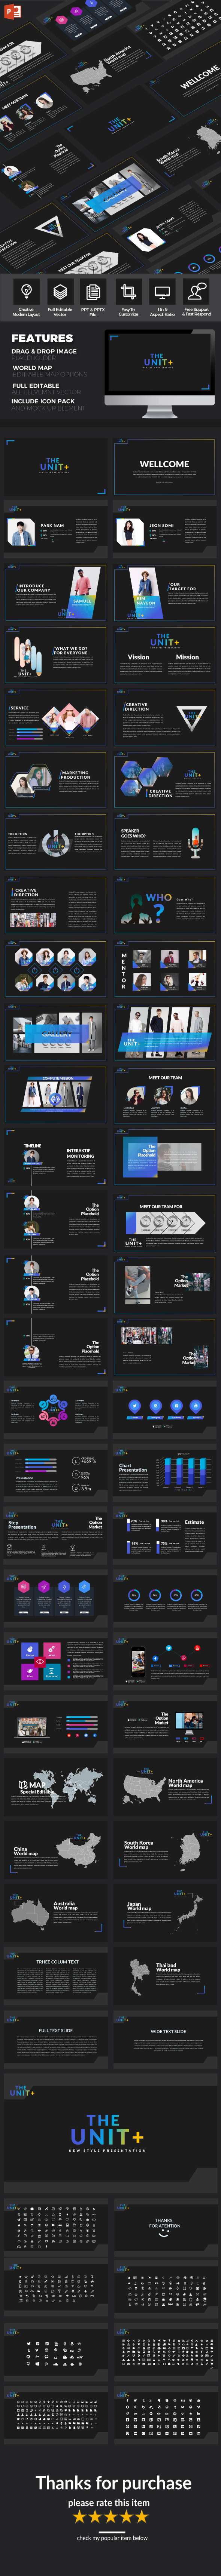 The Unit - Multipurpose PowerPoint Template - Creative PowerPoint Templates